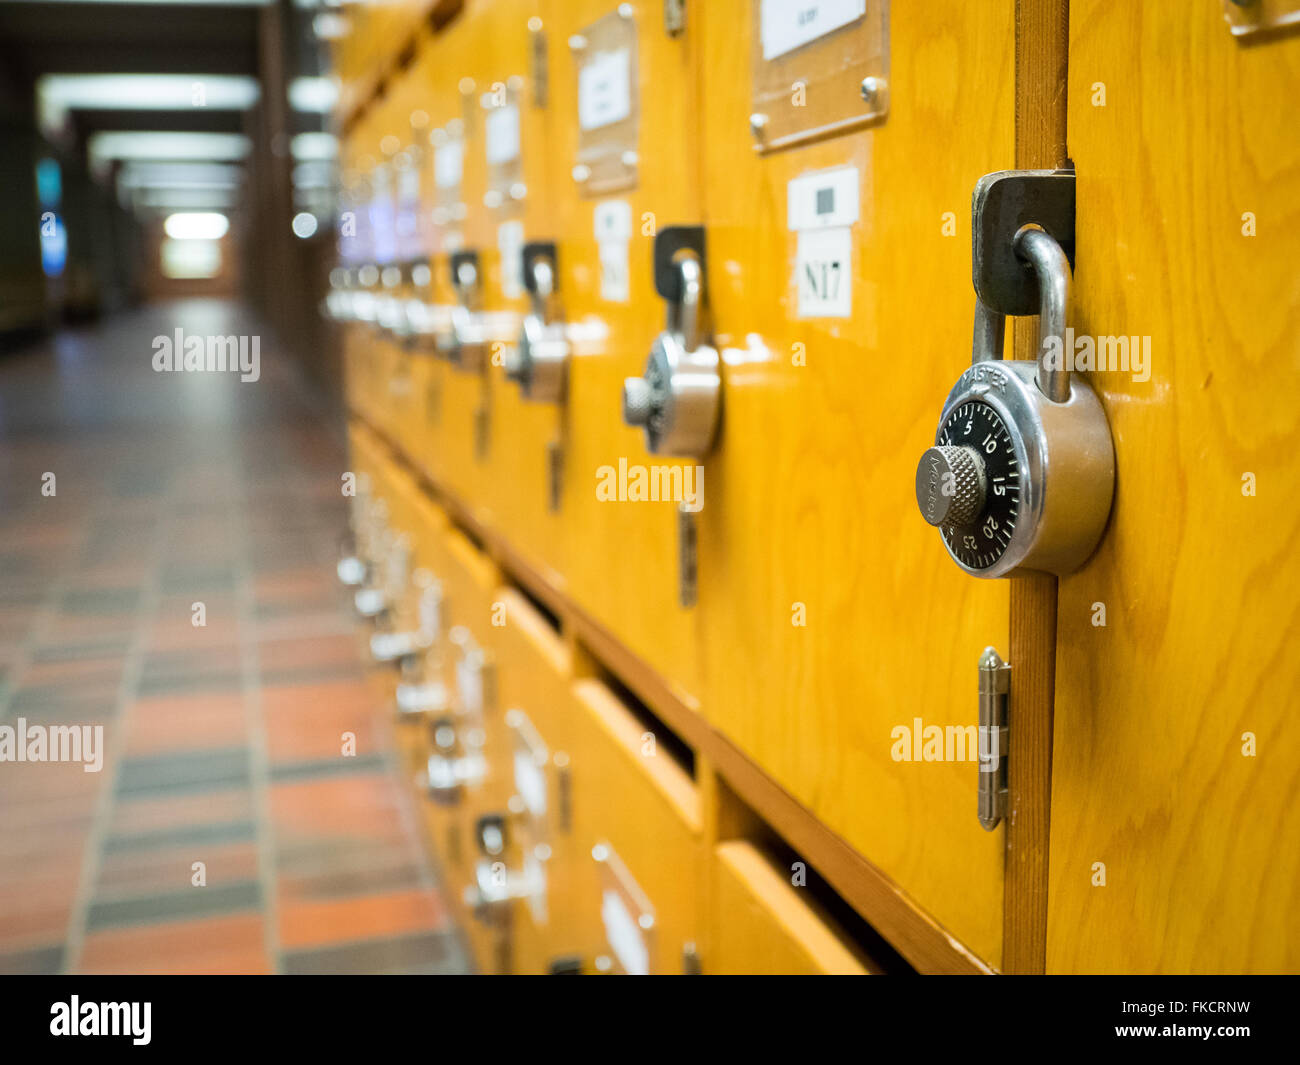 Combination locks on wooden lockers in a hallway at the Central Academic Building at the University of Alberta. - Stock Image